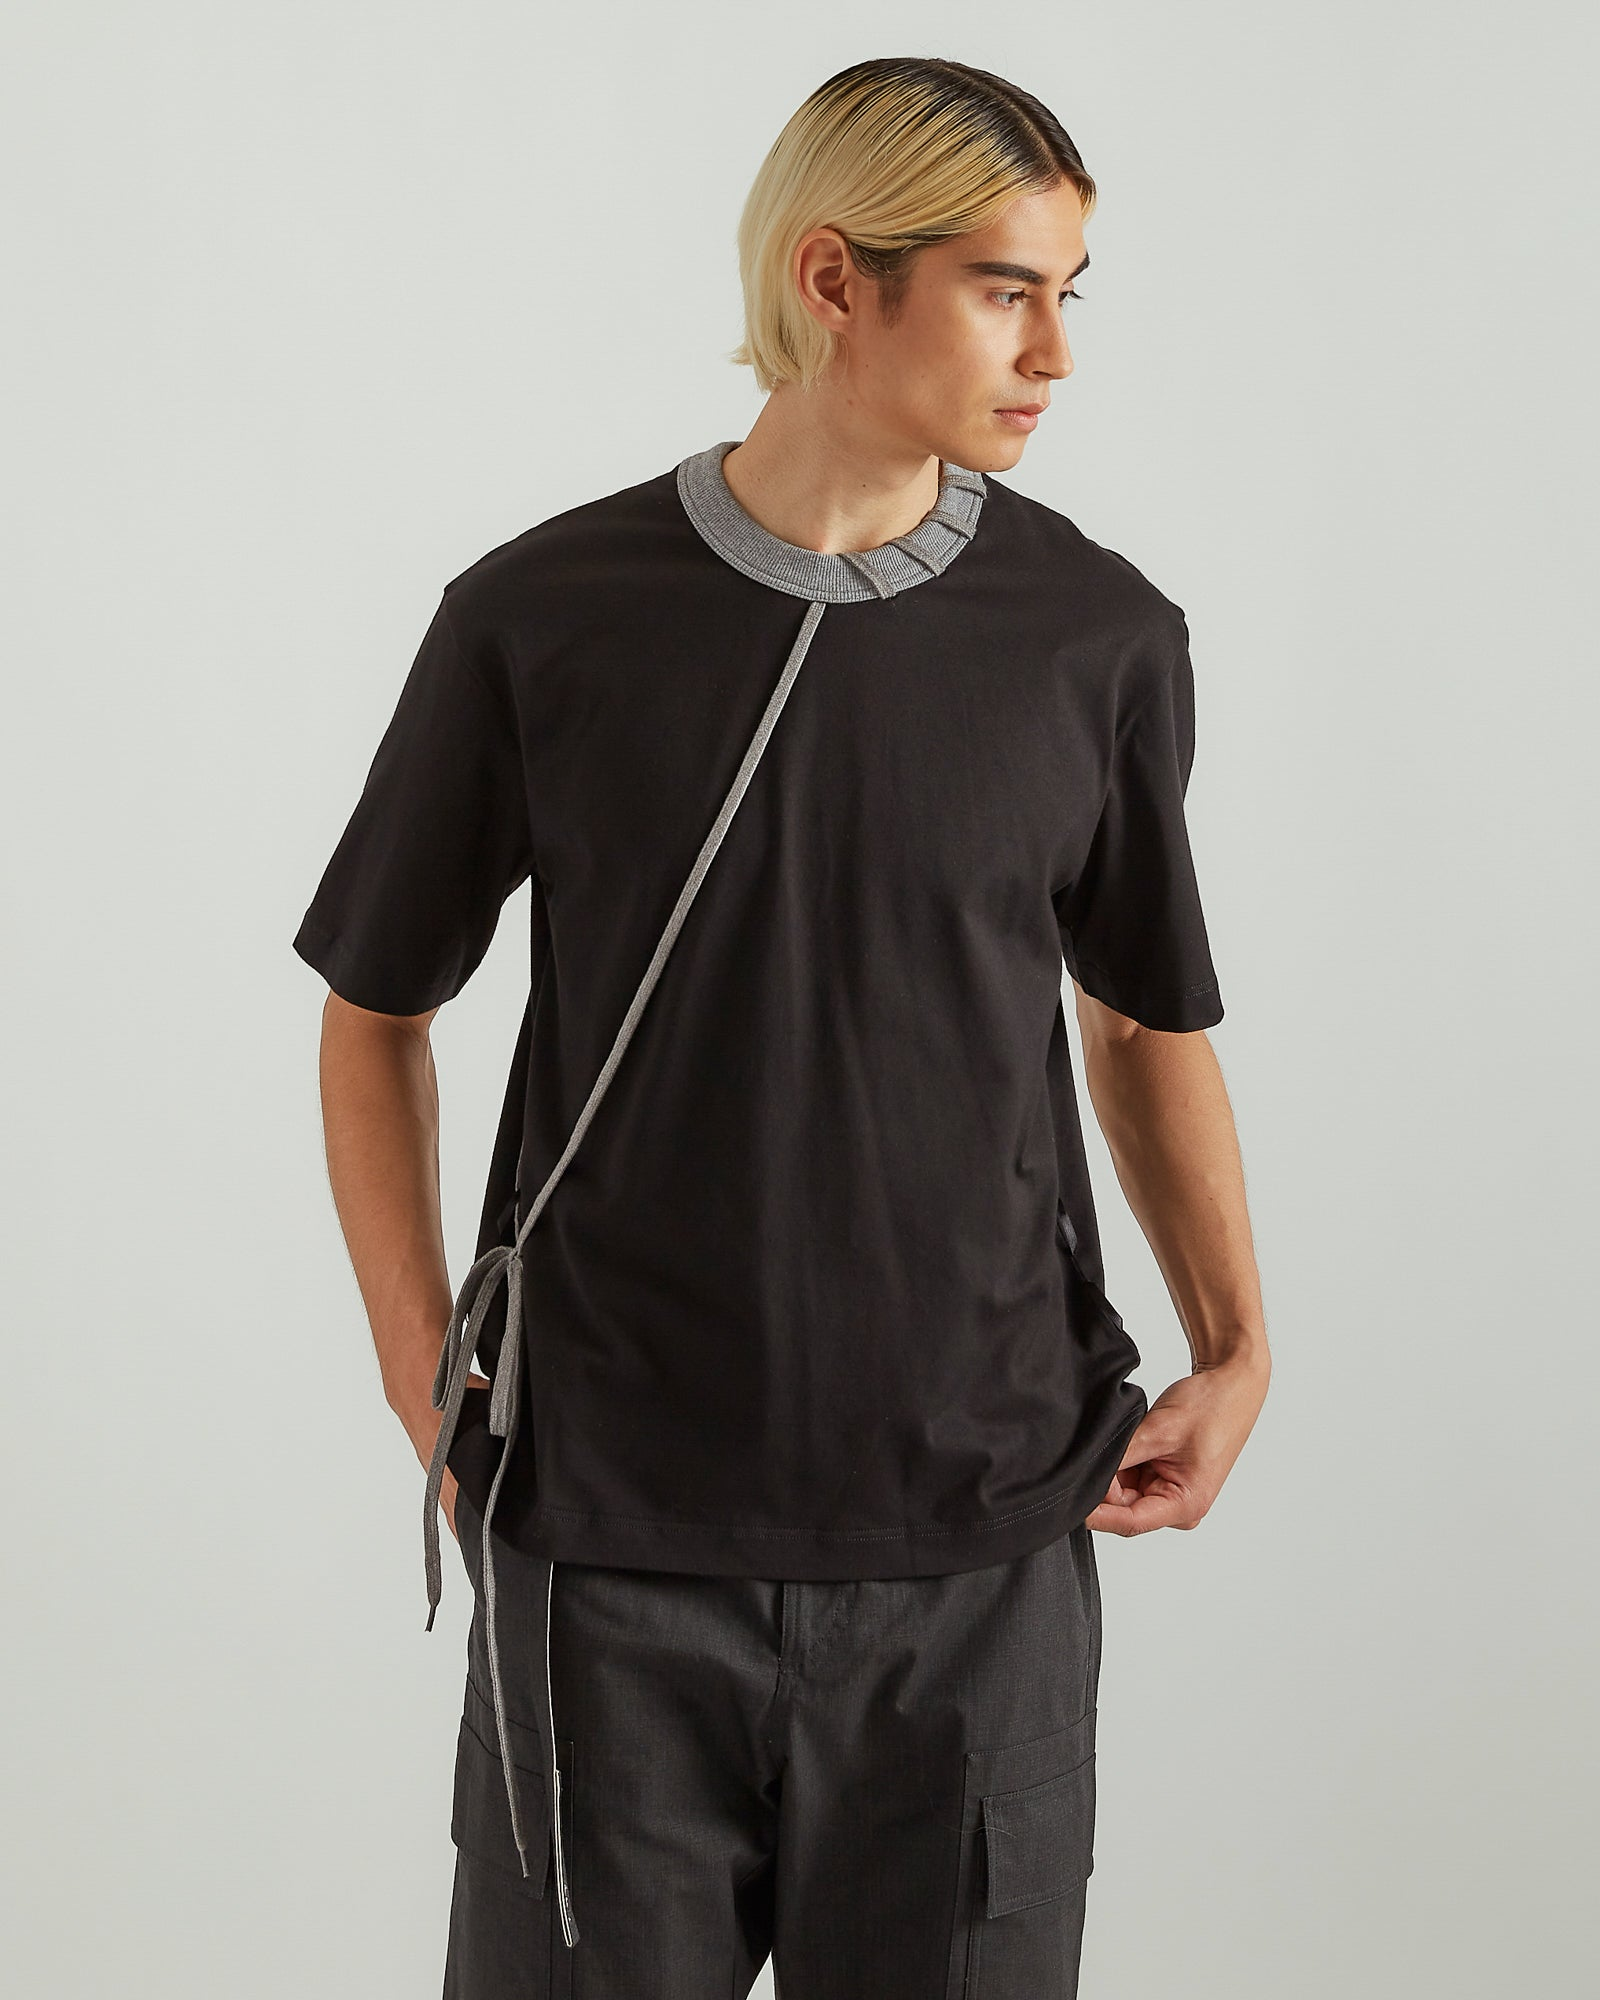 Laced T-Shirt in Black/Gray